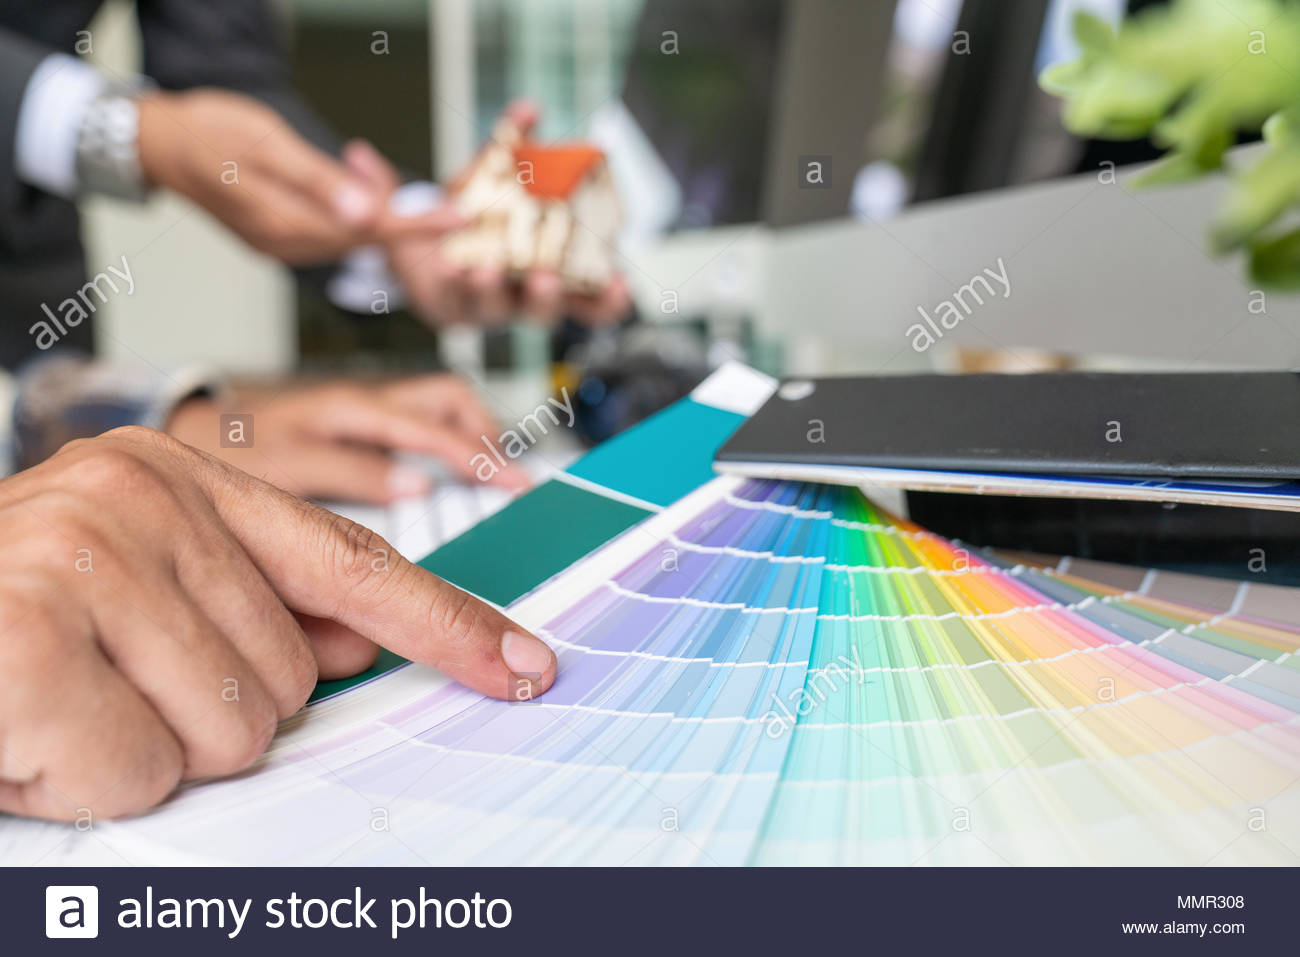 office color palette trendy closeup view of hands young designer woman working with color palette at office desk attractive model choosing creative people workplace